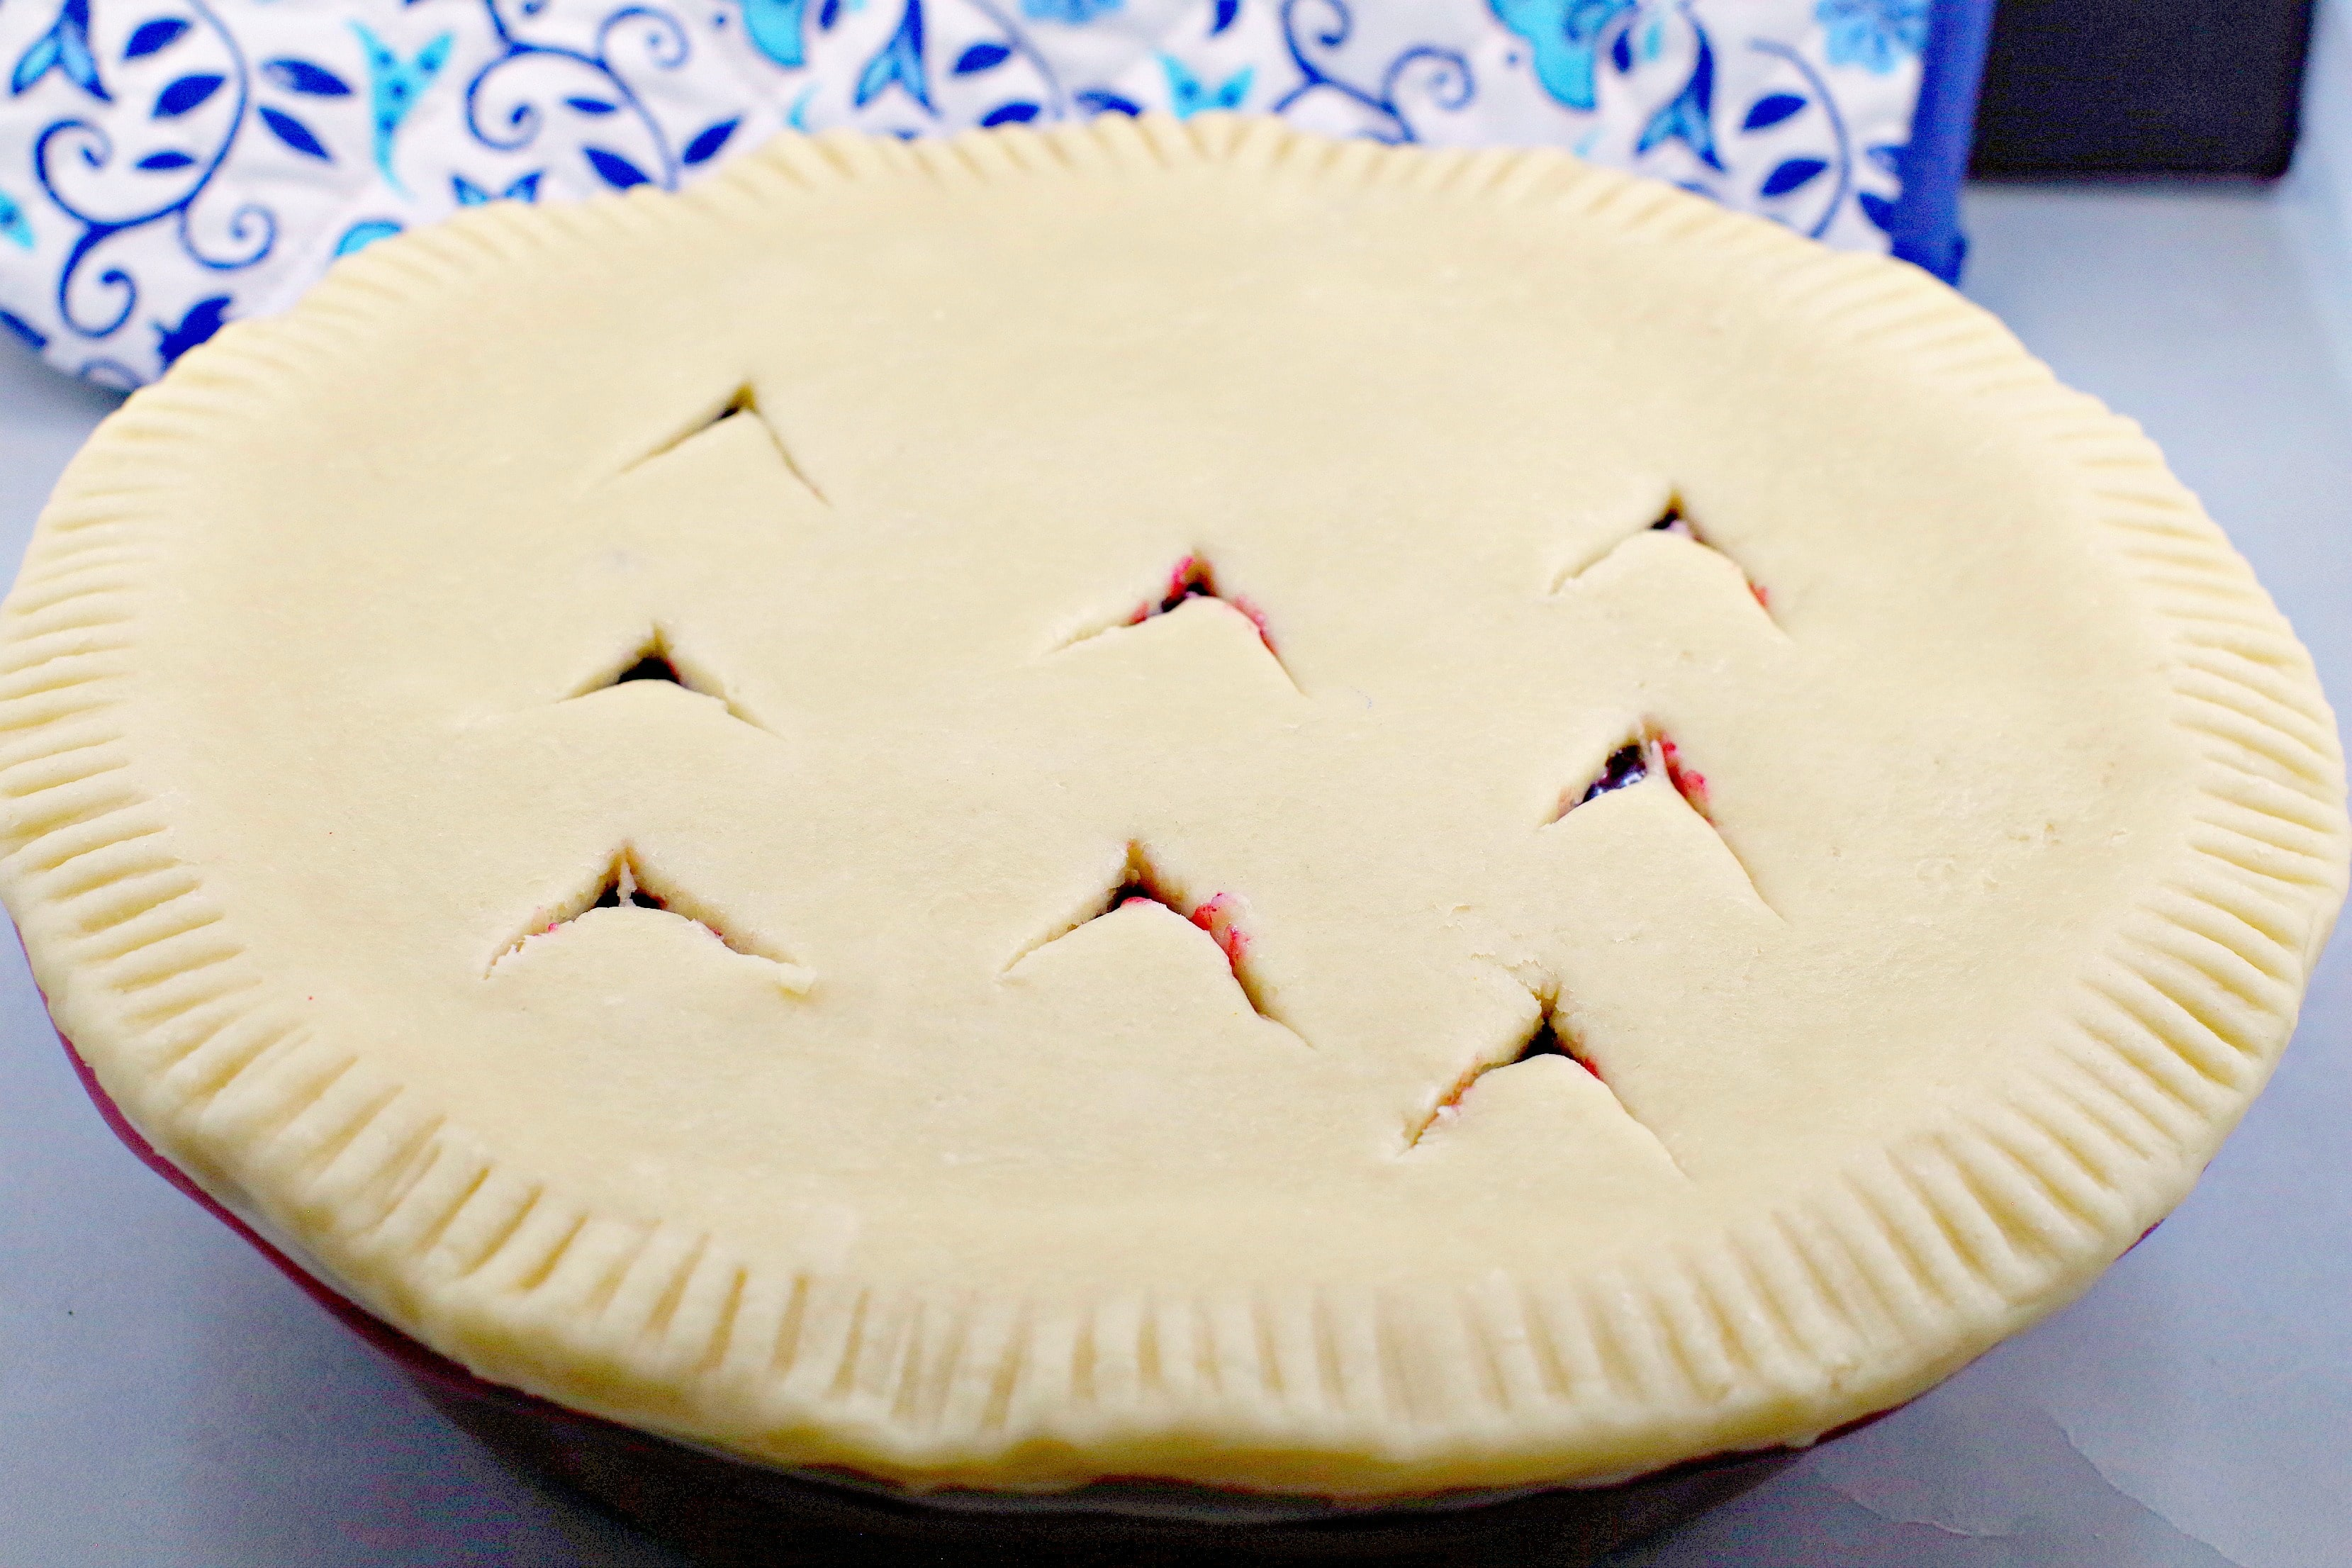 Pie crust with vents cut into it